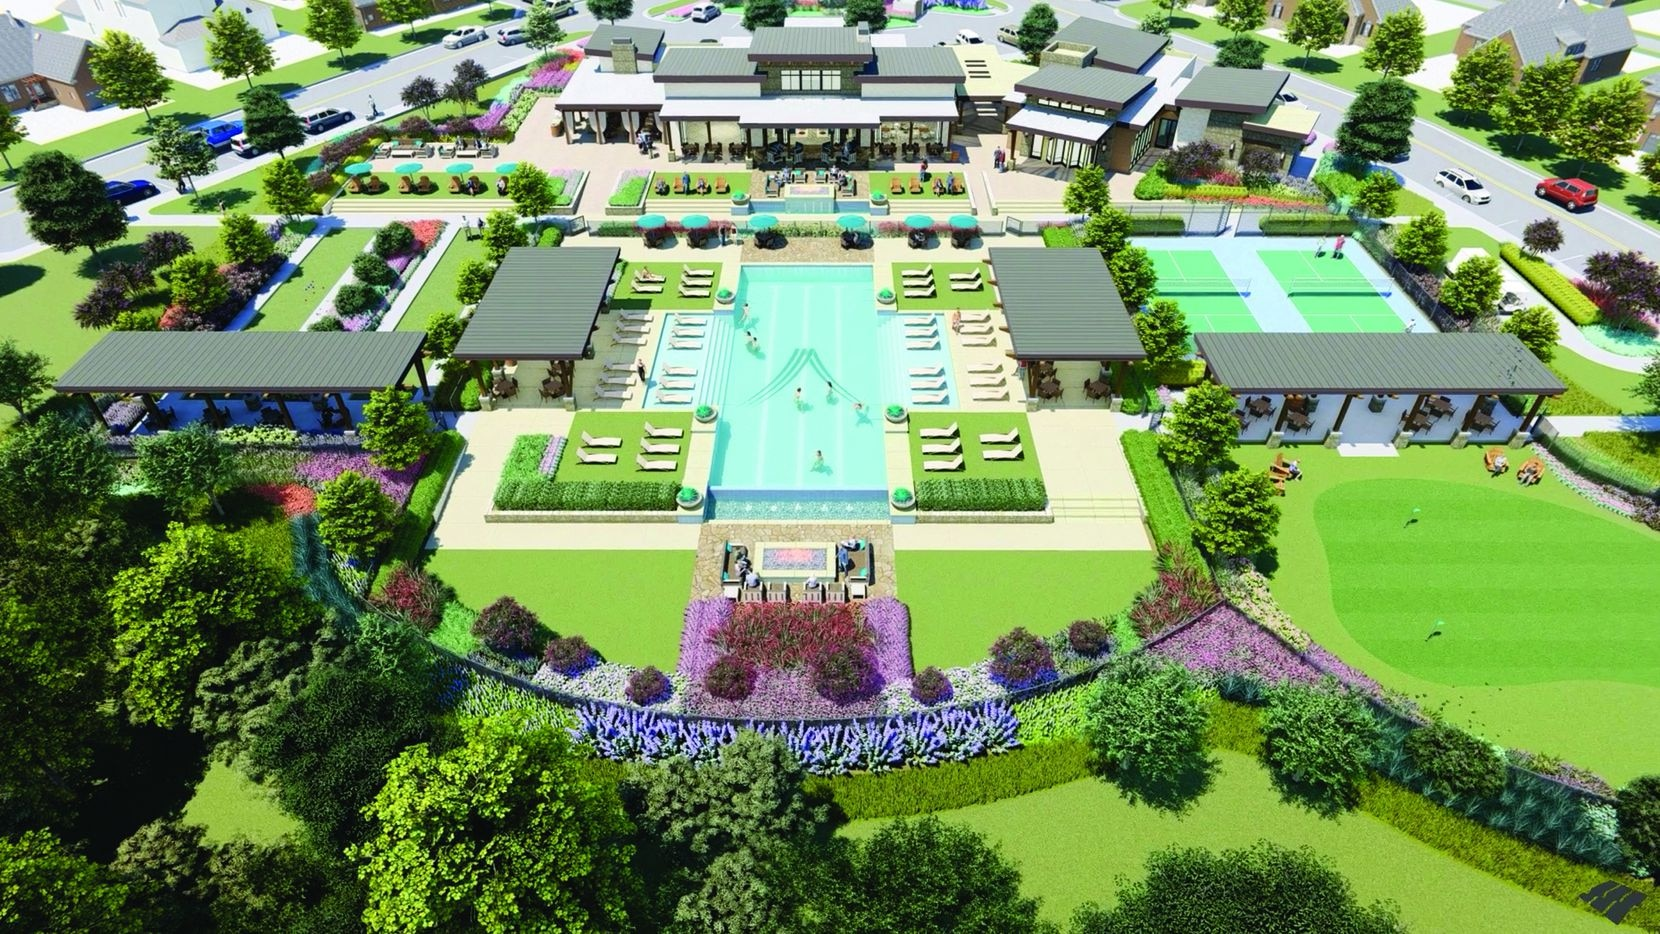 This is a rendering of the Magnolia Amenity Center, the heart of the Elements at Viridian community.